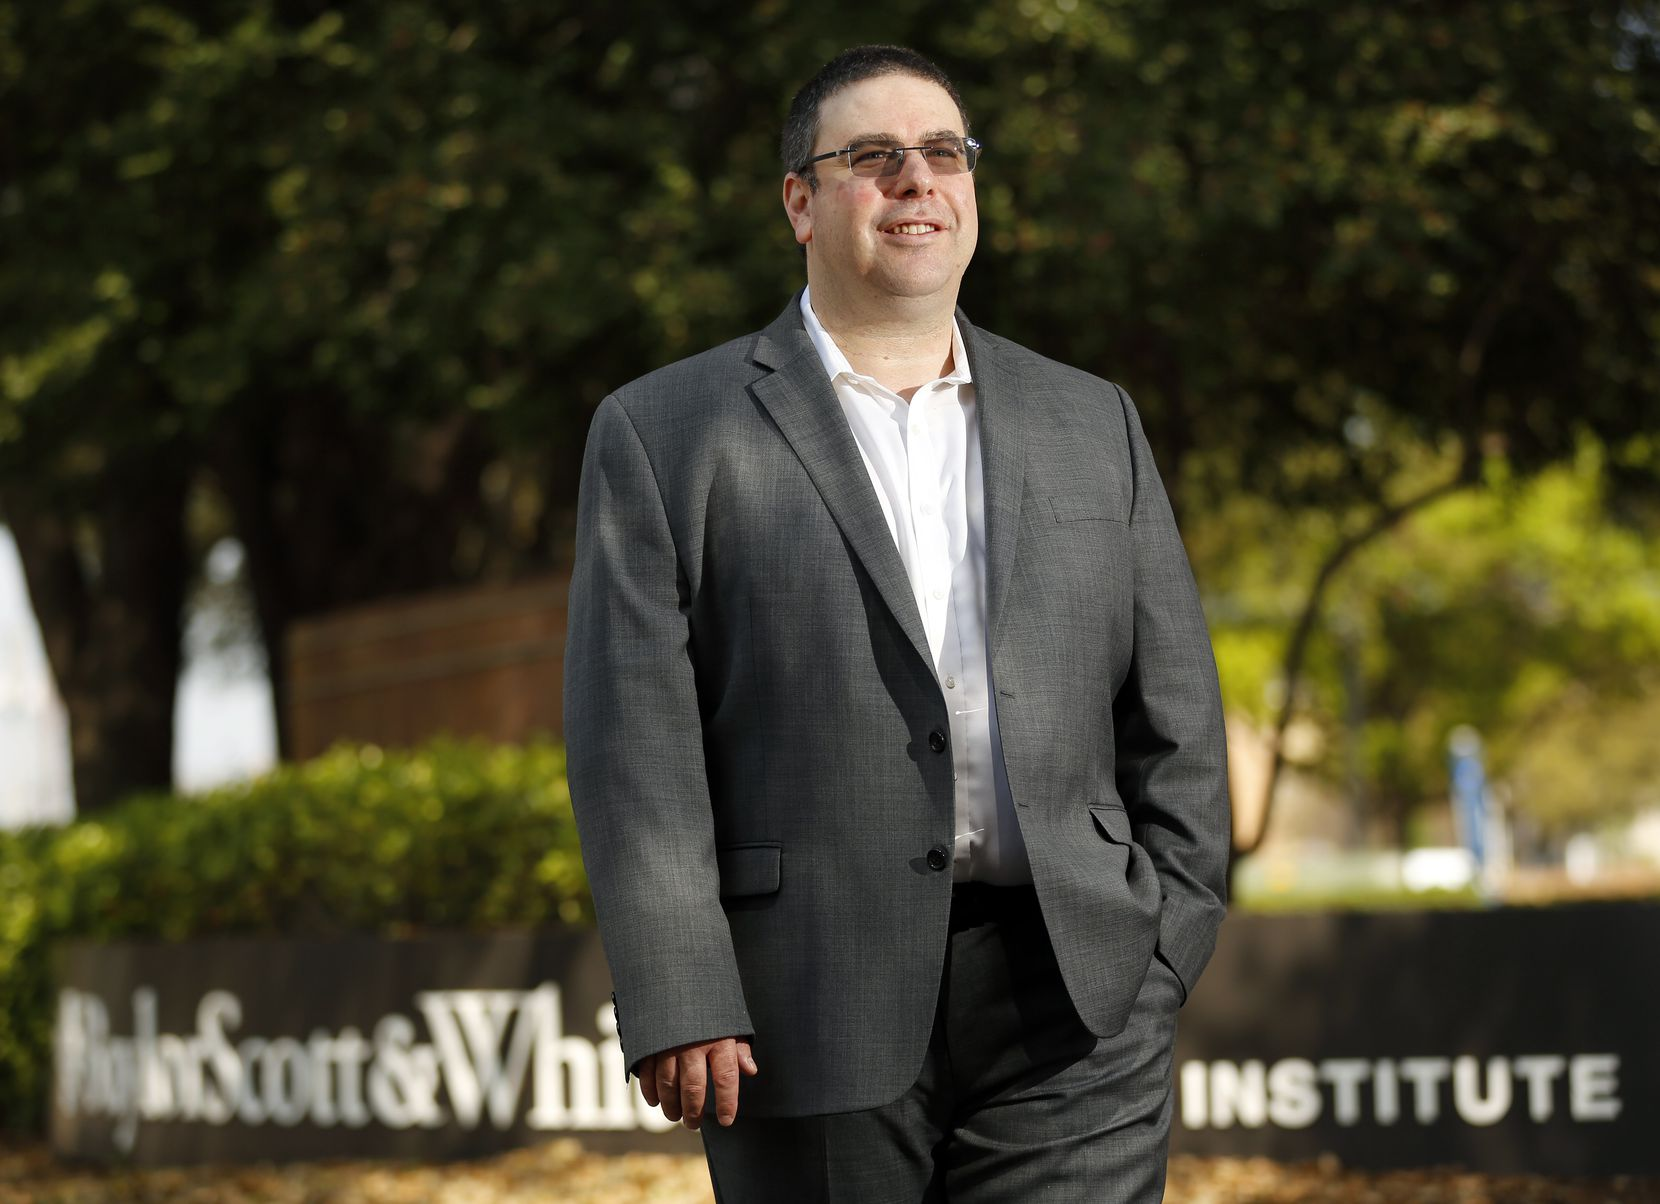 Dr. Robert L. Gottlieb, principal investigator of Baylor Scott and White  active clinical trials for COVID-19, poses for a photo outside the research facility in Dallas, Thursday, March 26, 2020.